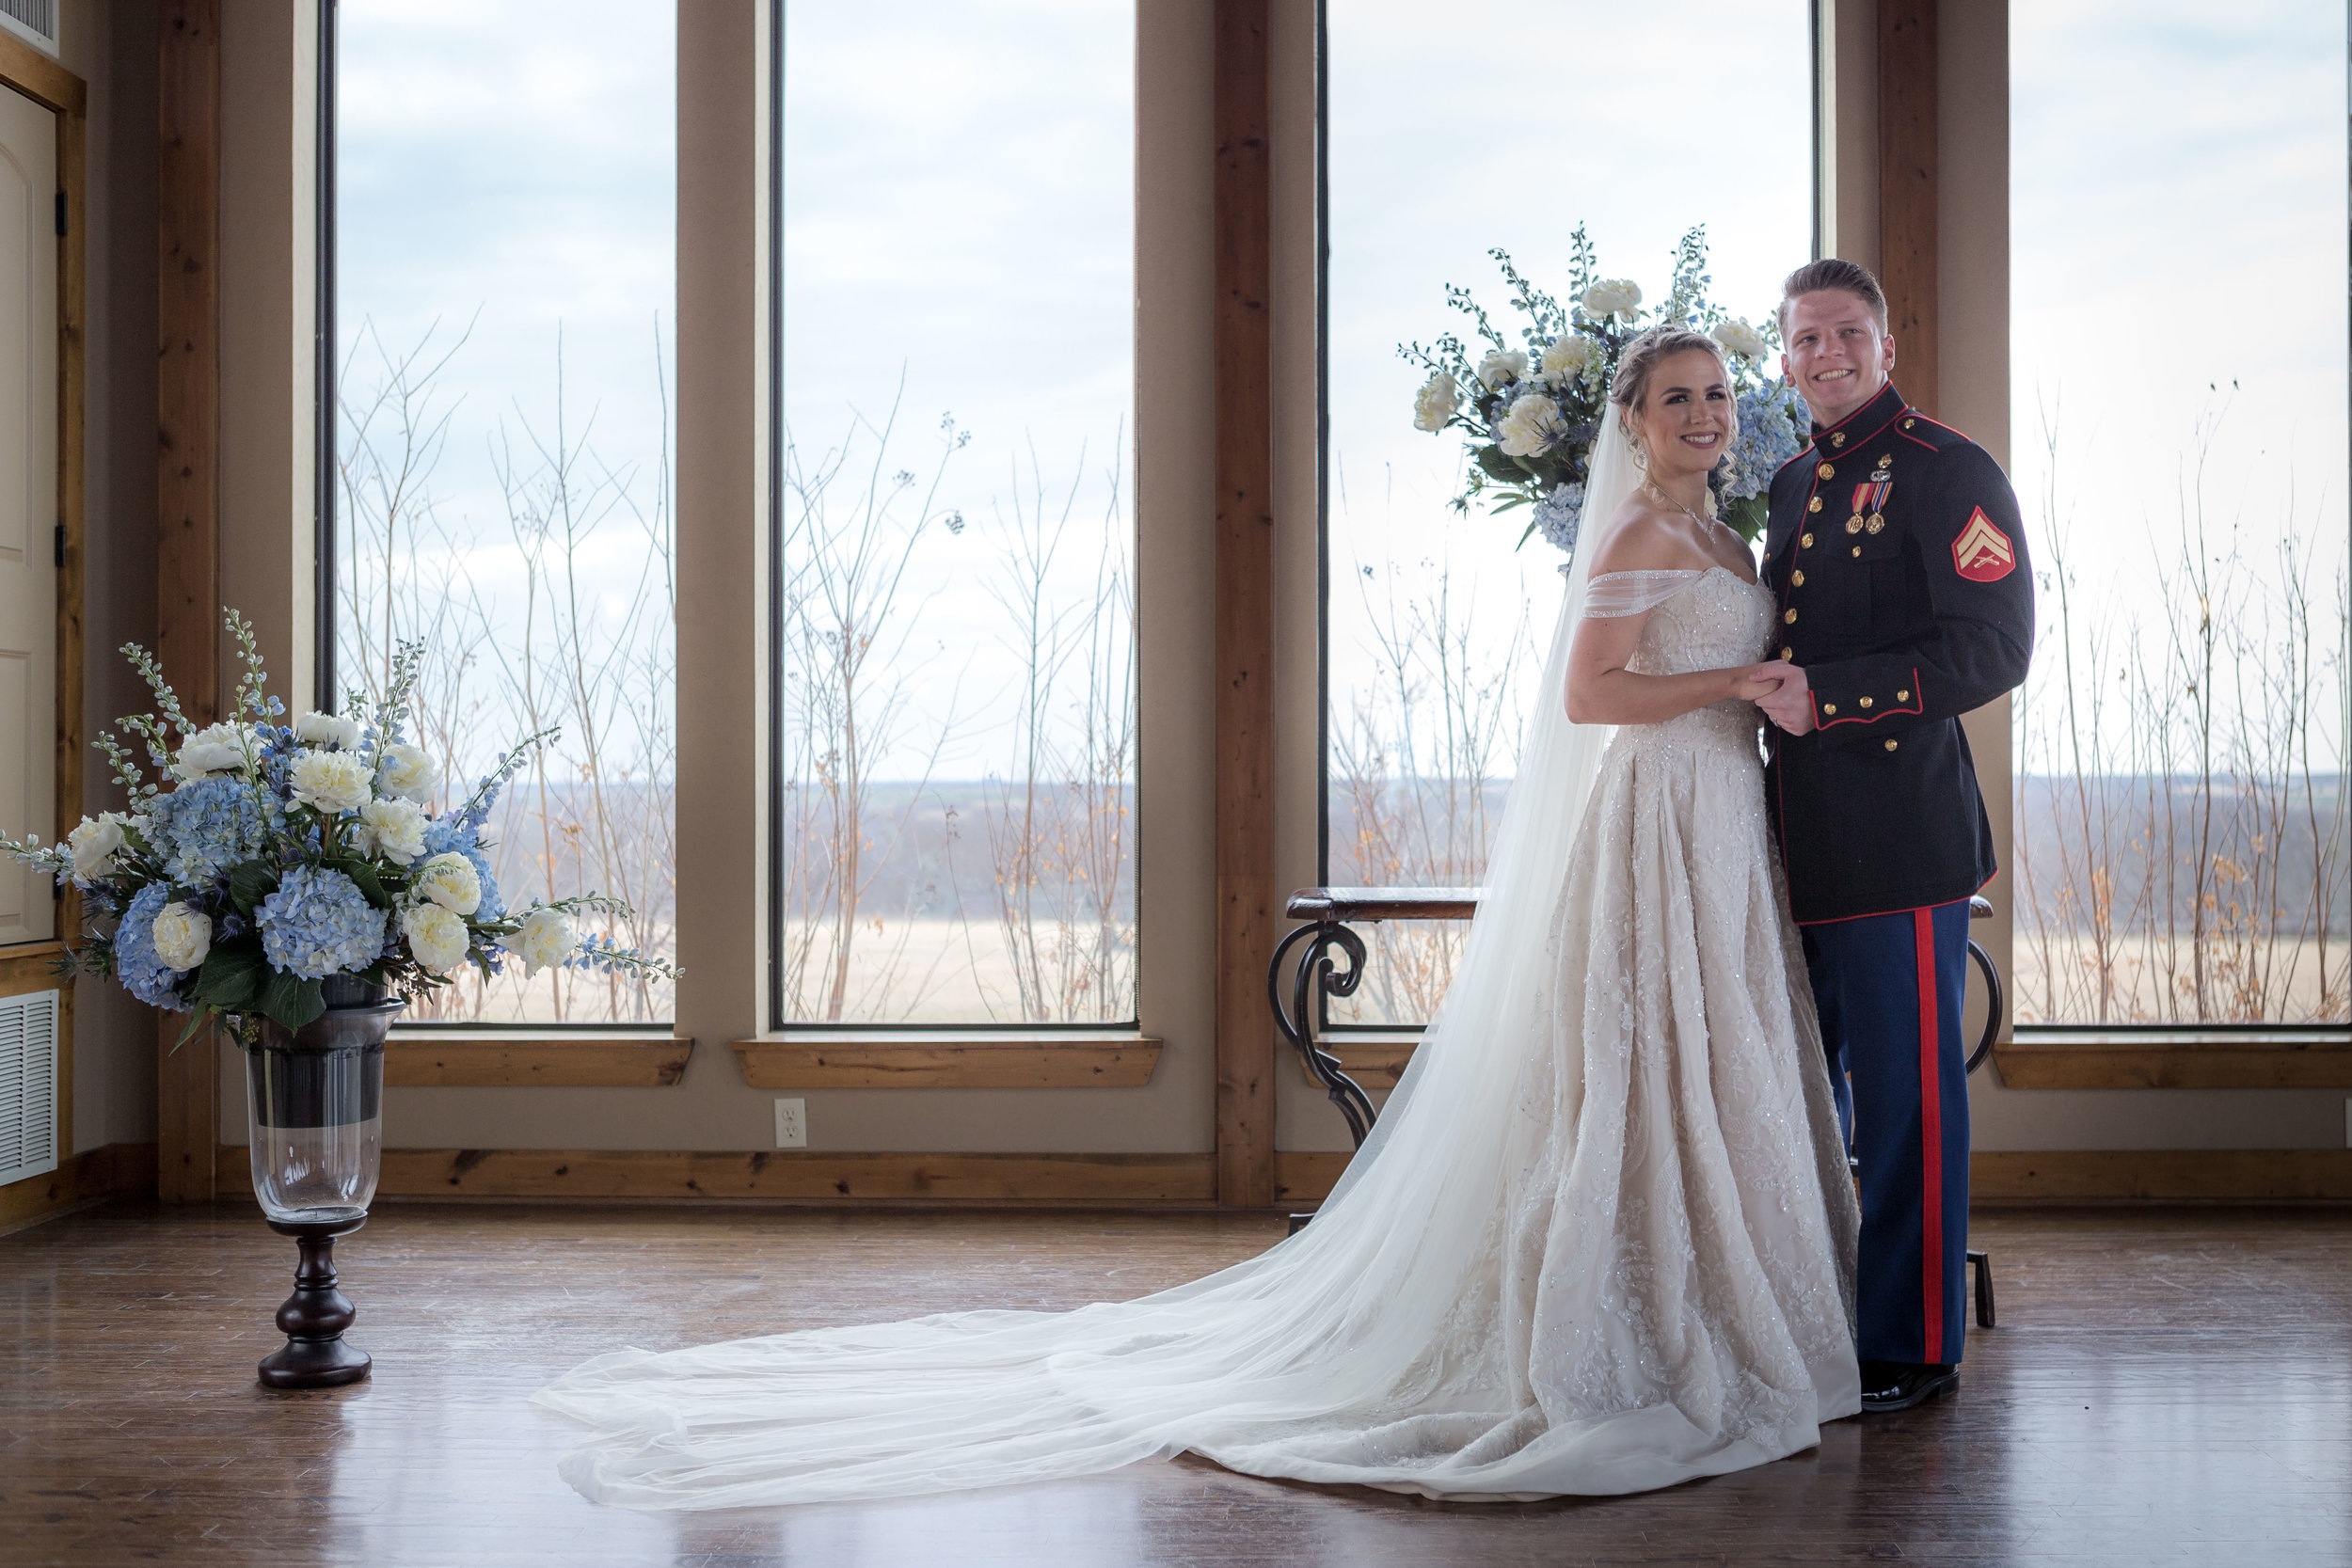 12.30.18 Maggies Wedding Webpage Edits-20.jpg